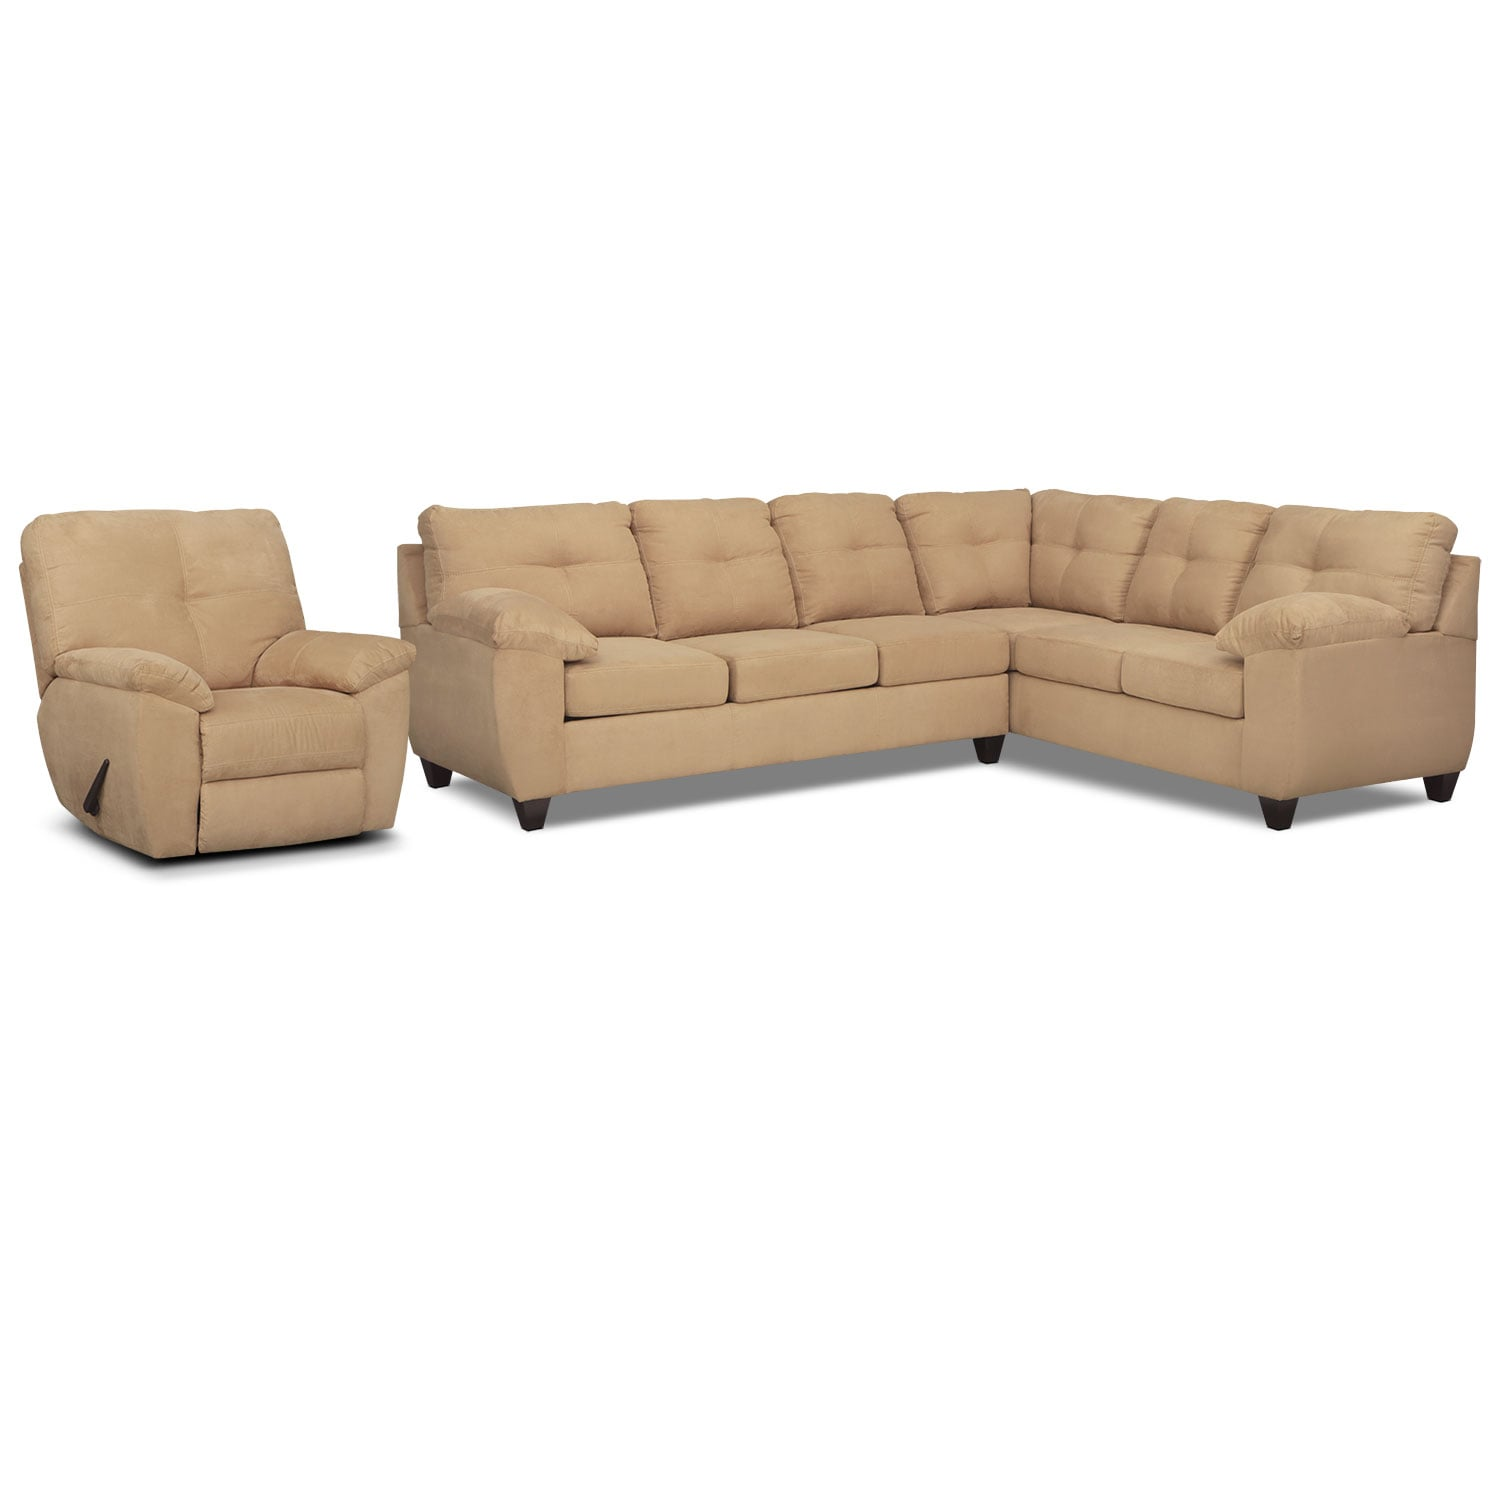 Rialto 2-Piece Sectional with Right-Facing Corner Sofa and Glider Recliner Set - Camel